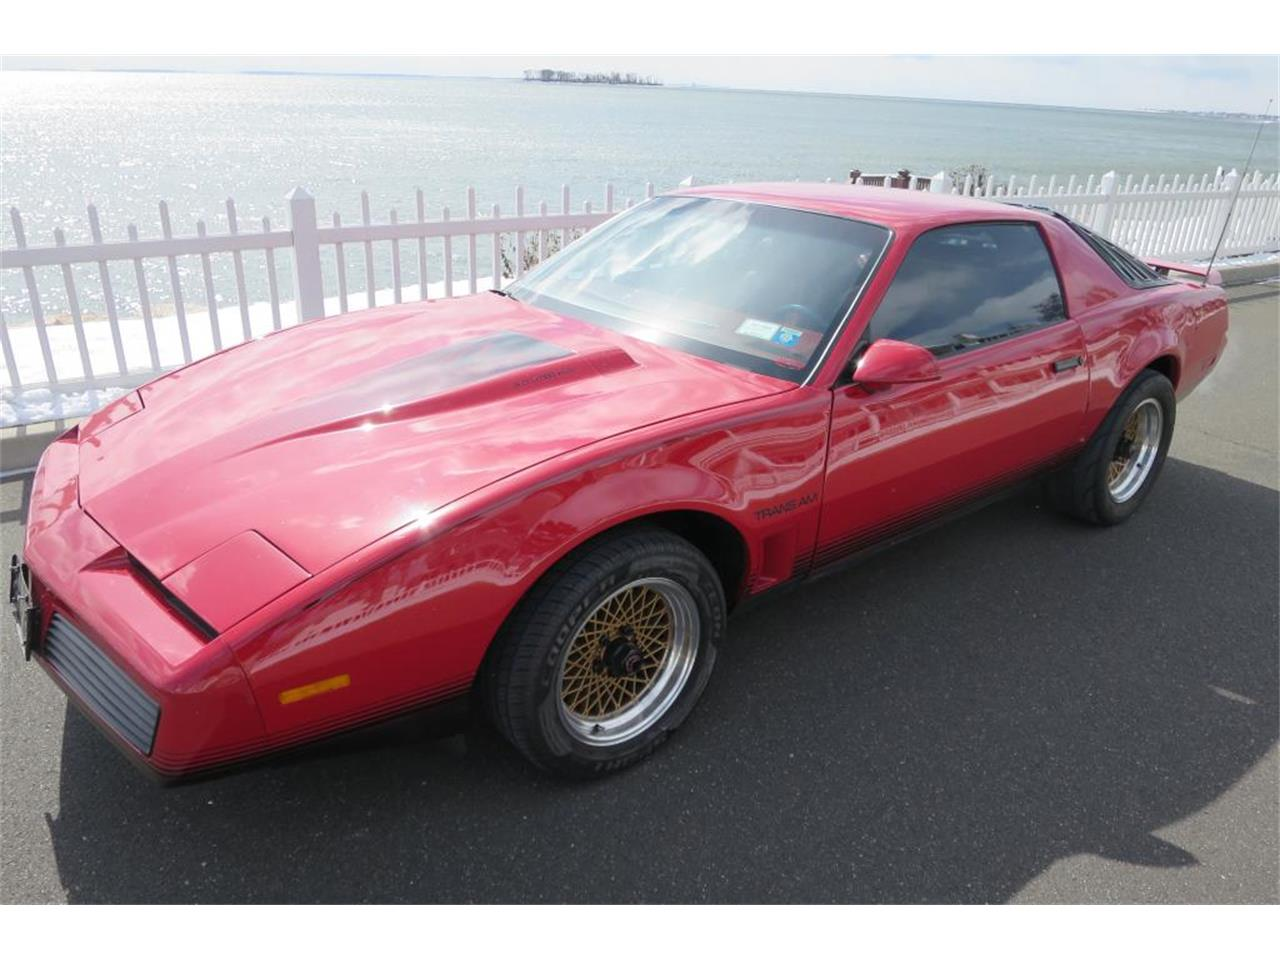 1984 pontiac firebird trans am for sale classiccars com cc 965000 1984 pontiac firebird trans am for sale